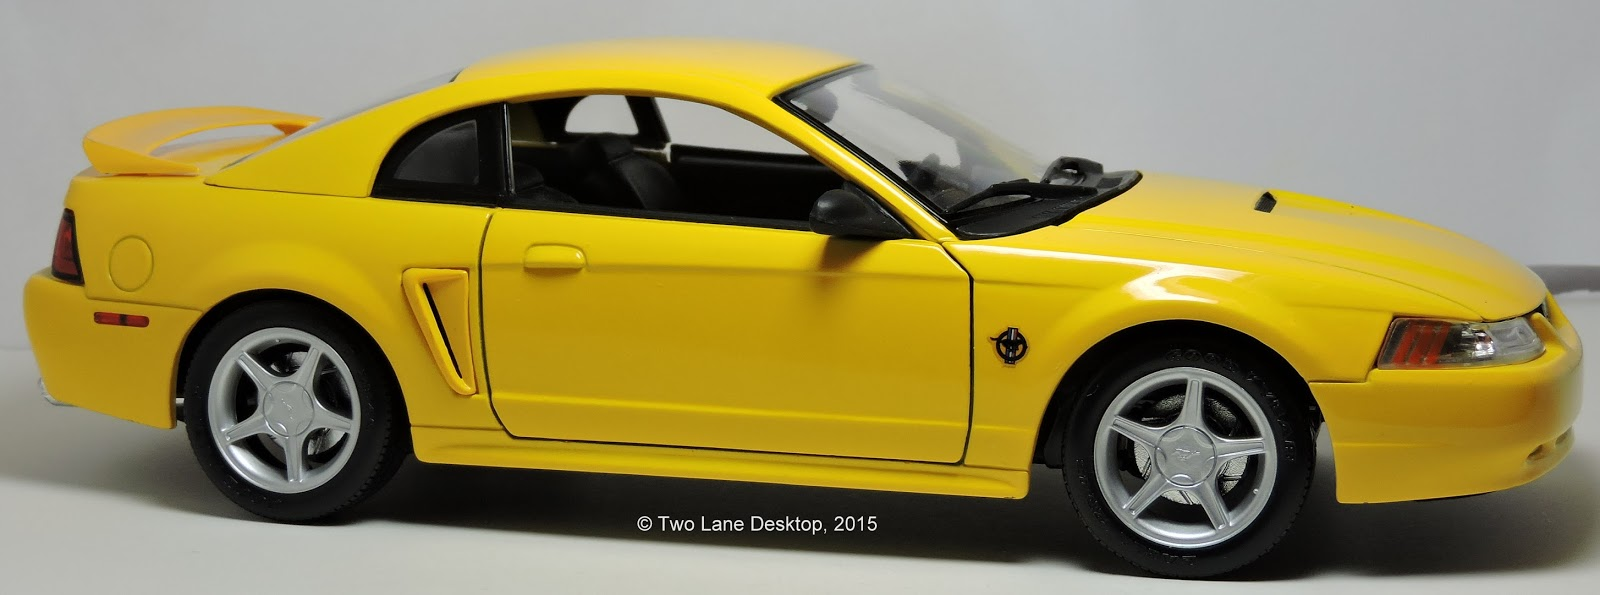 Ford ford mustang 99 : Two Lane Desktop: Maisto 1:18 1999 Ford Mustang GT coupe and 35th ...